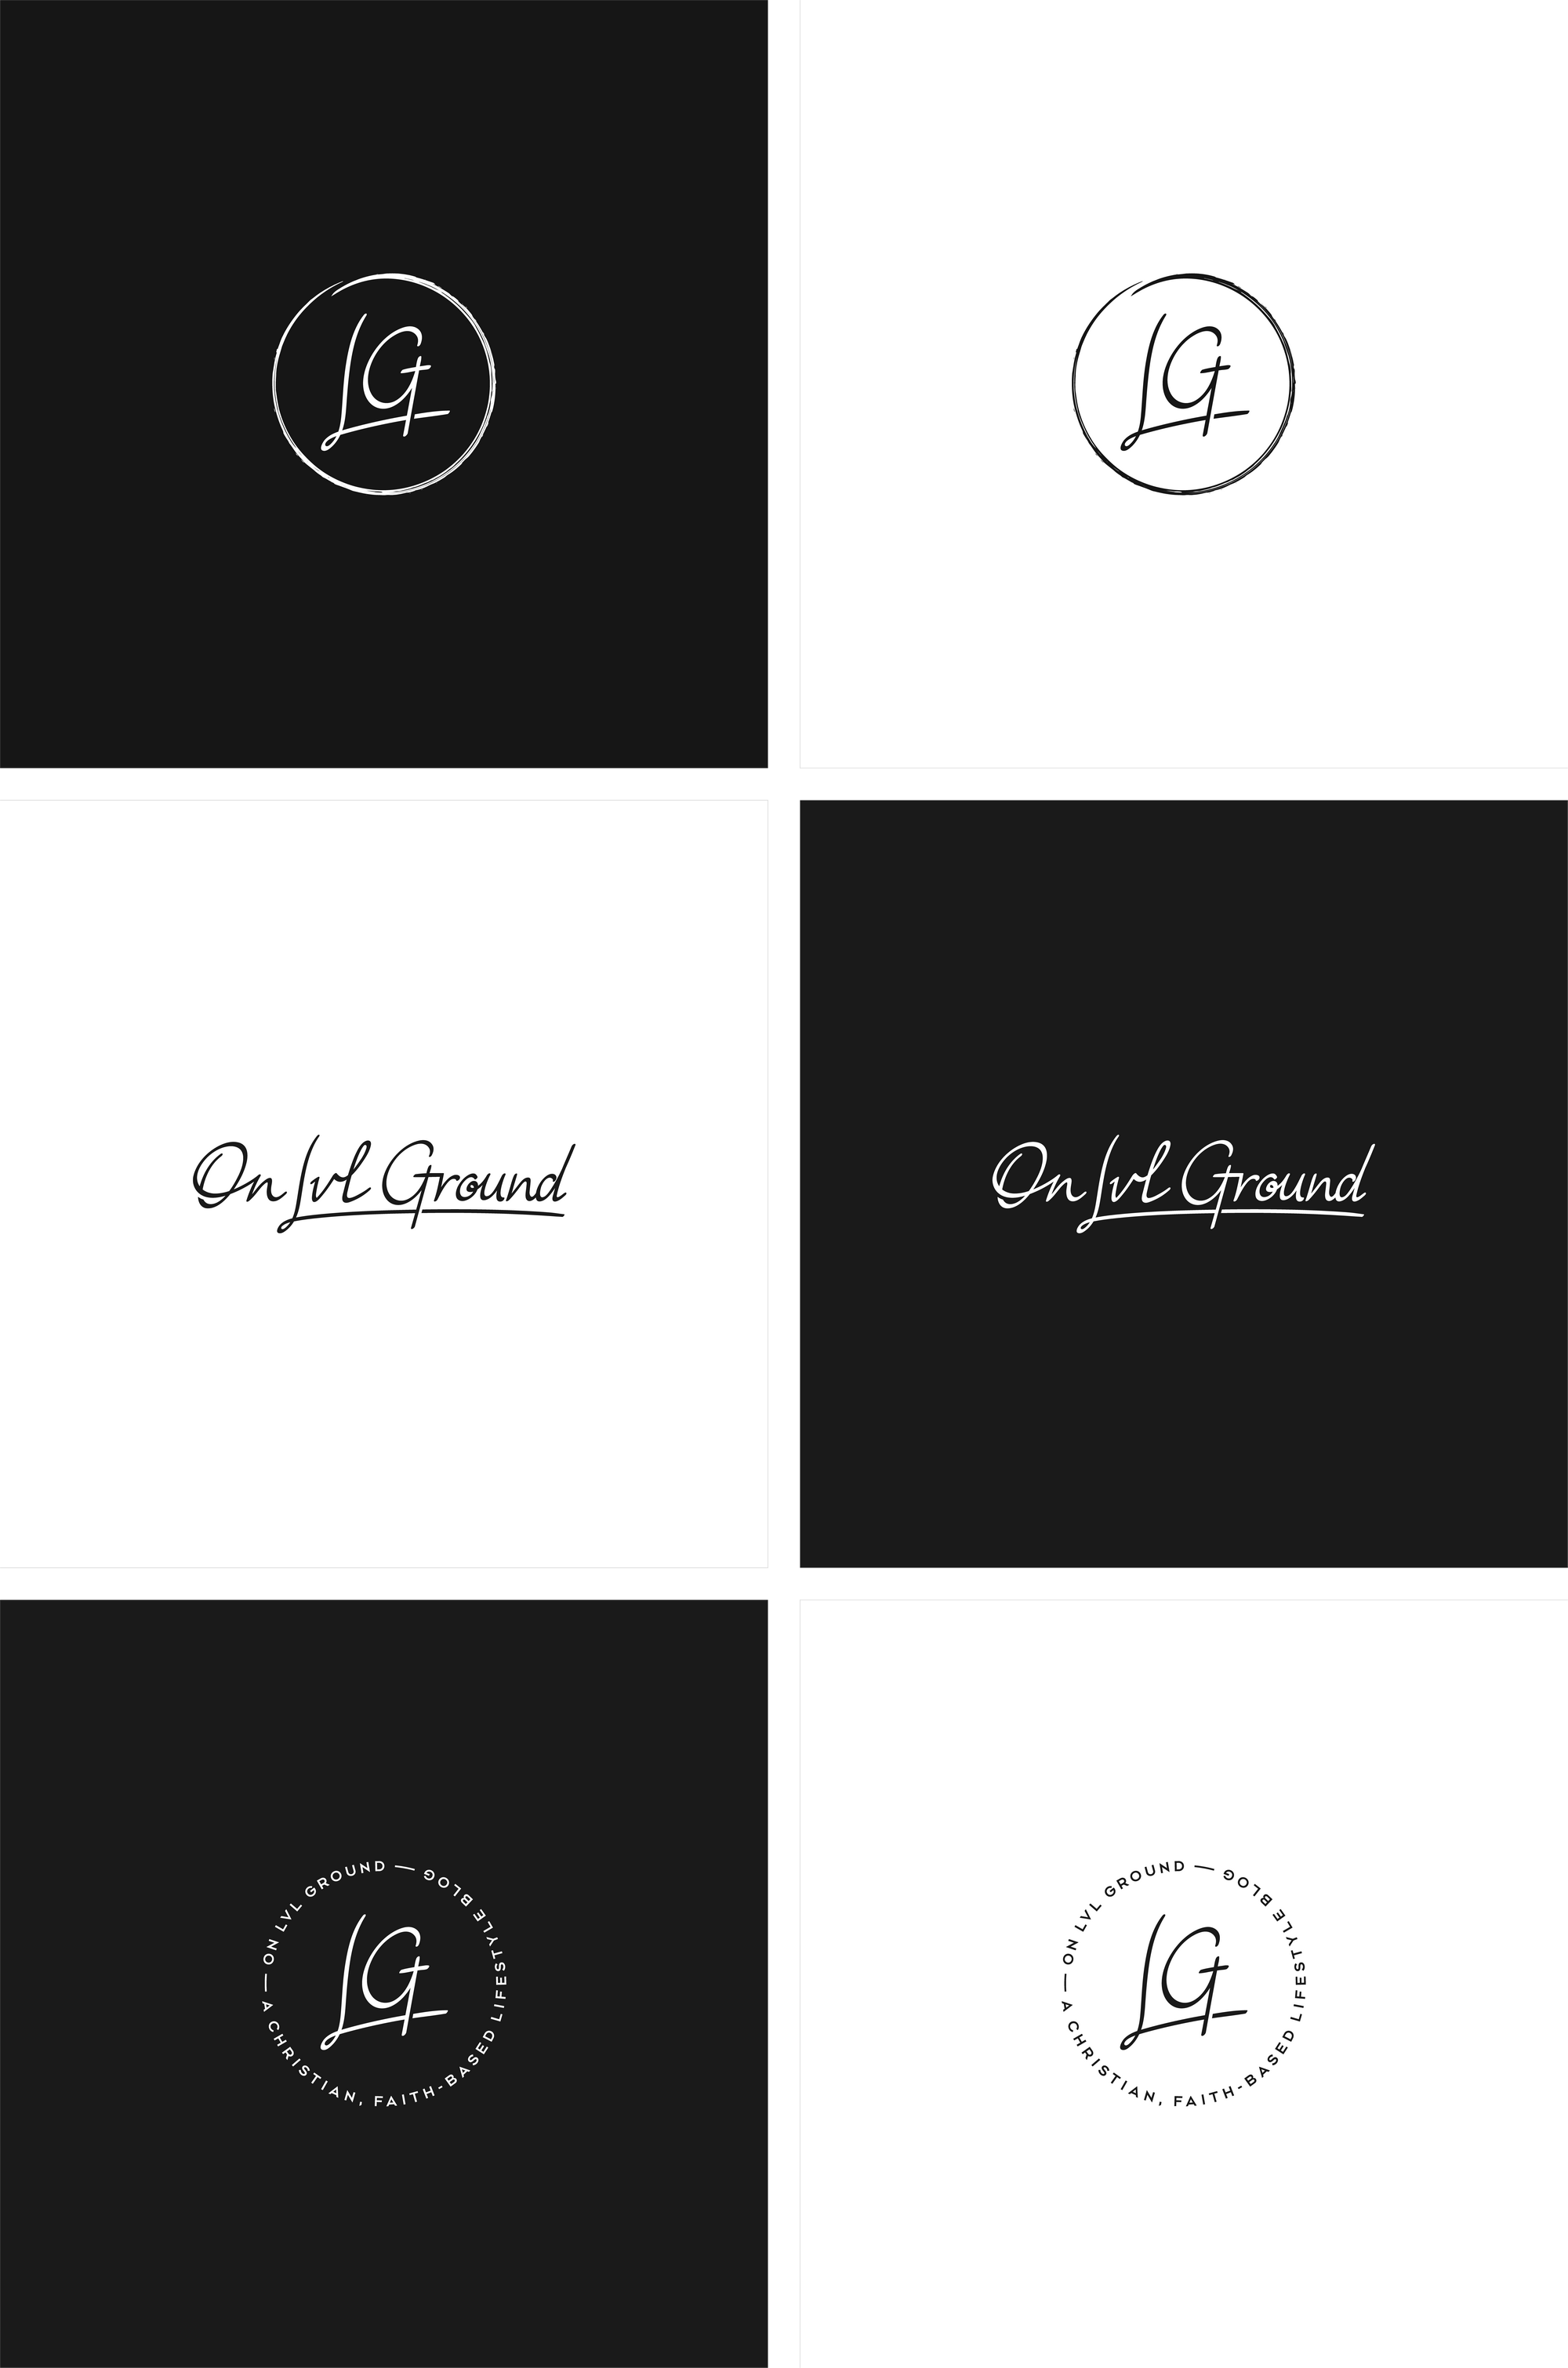 Create a wordmark logo icon with a cross  for a women's brand.